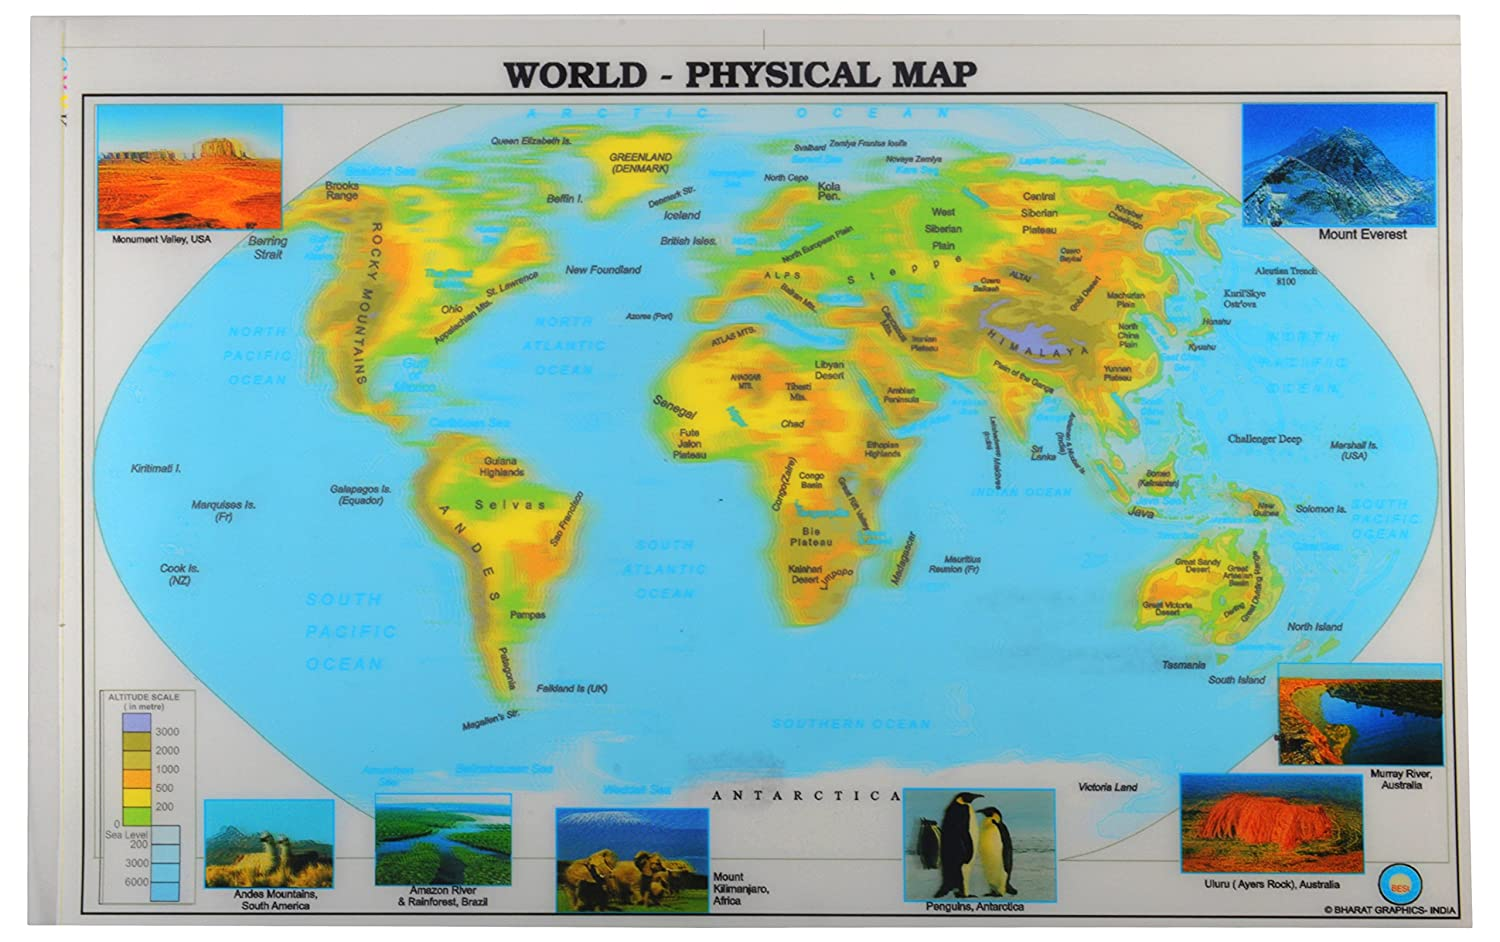 Best 3 D World Physical Map 35 Cm X 23 Cm X 35 Cm Pack Of 25